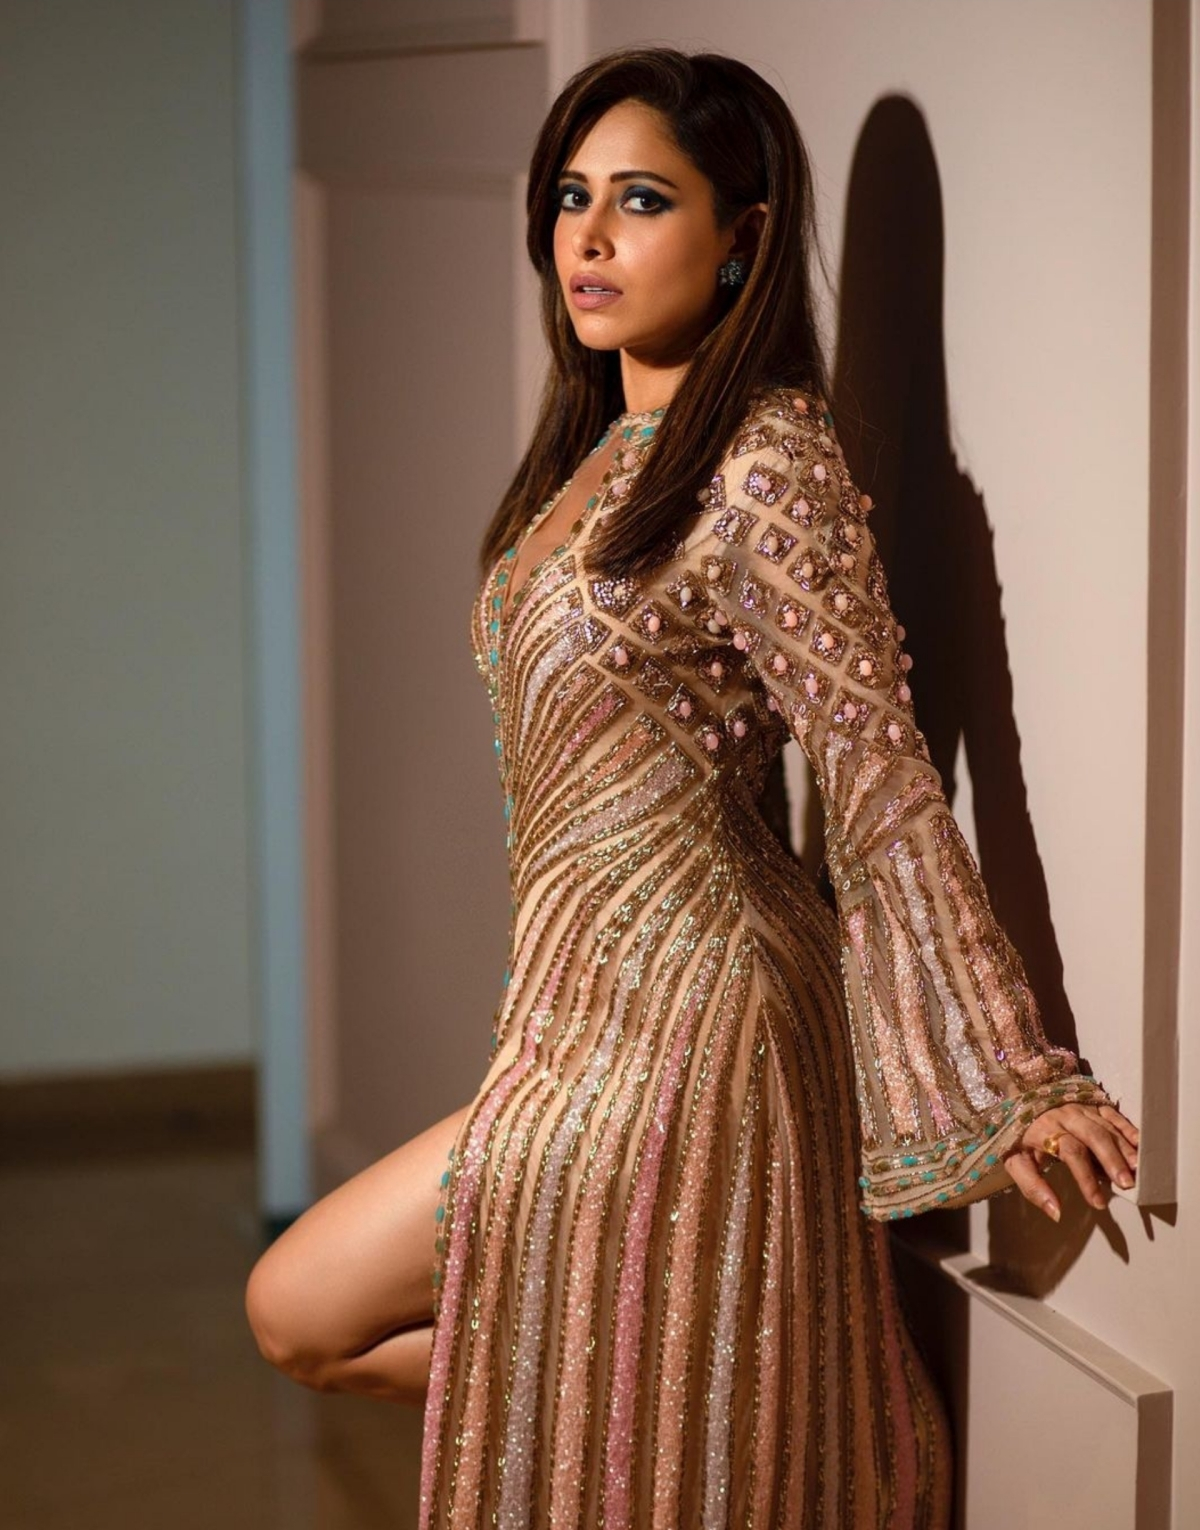 Nushrat Bharucha in a shiny outfit